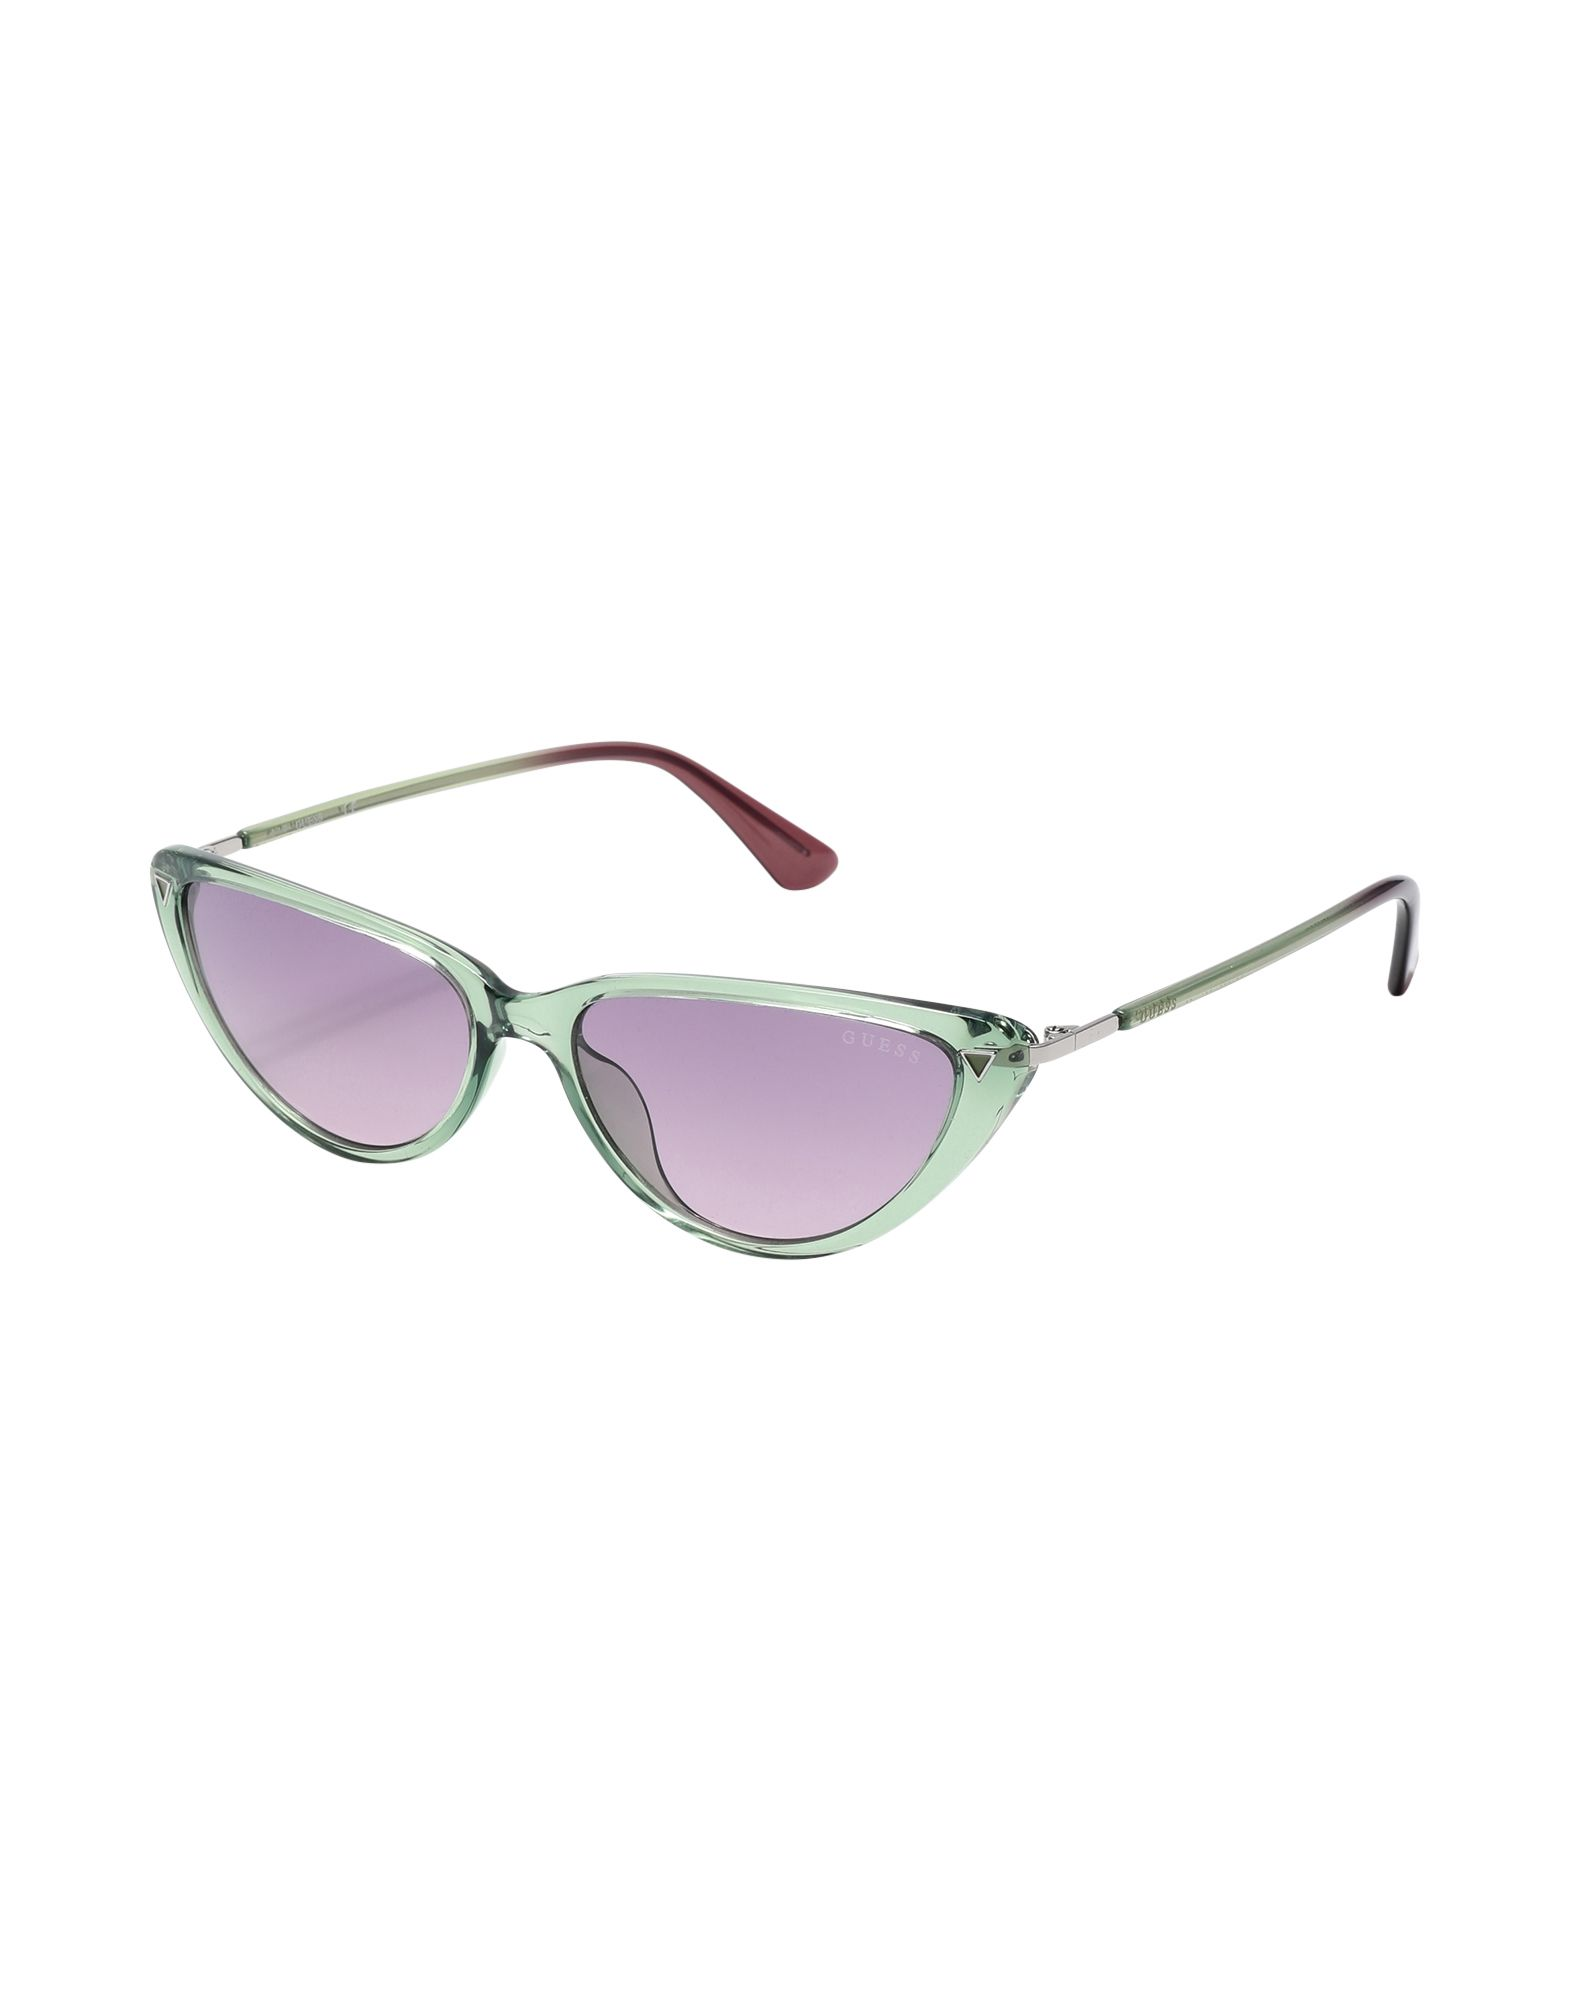 GUESS Sunglasses - Item 46688125